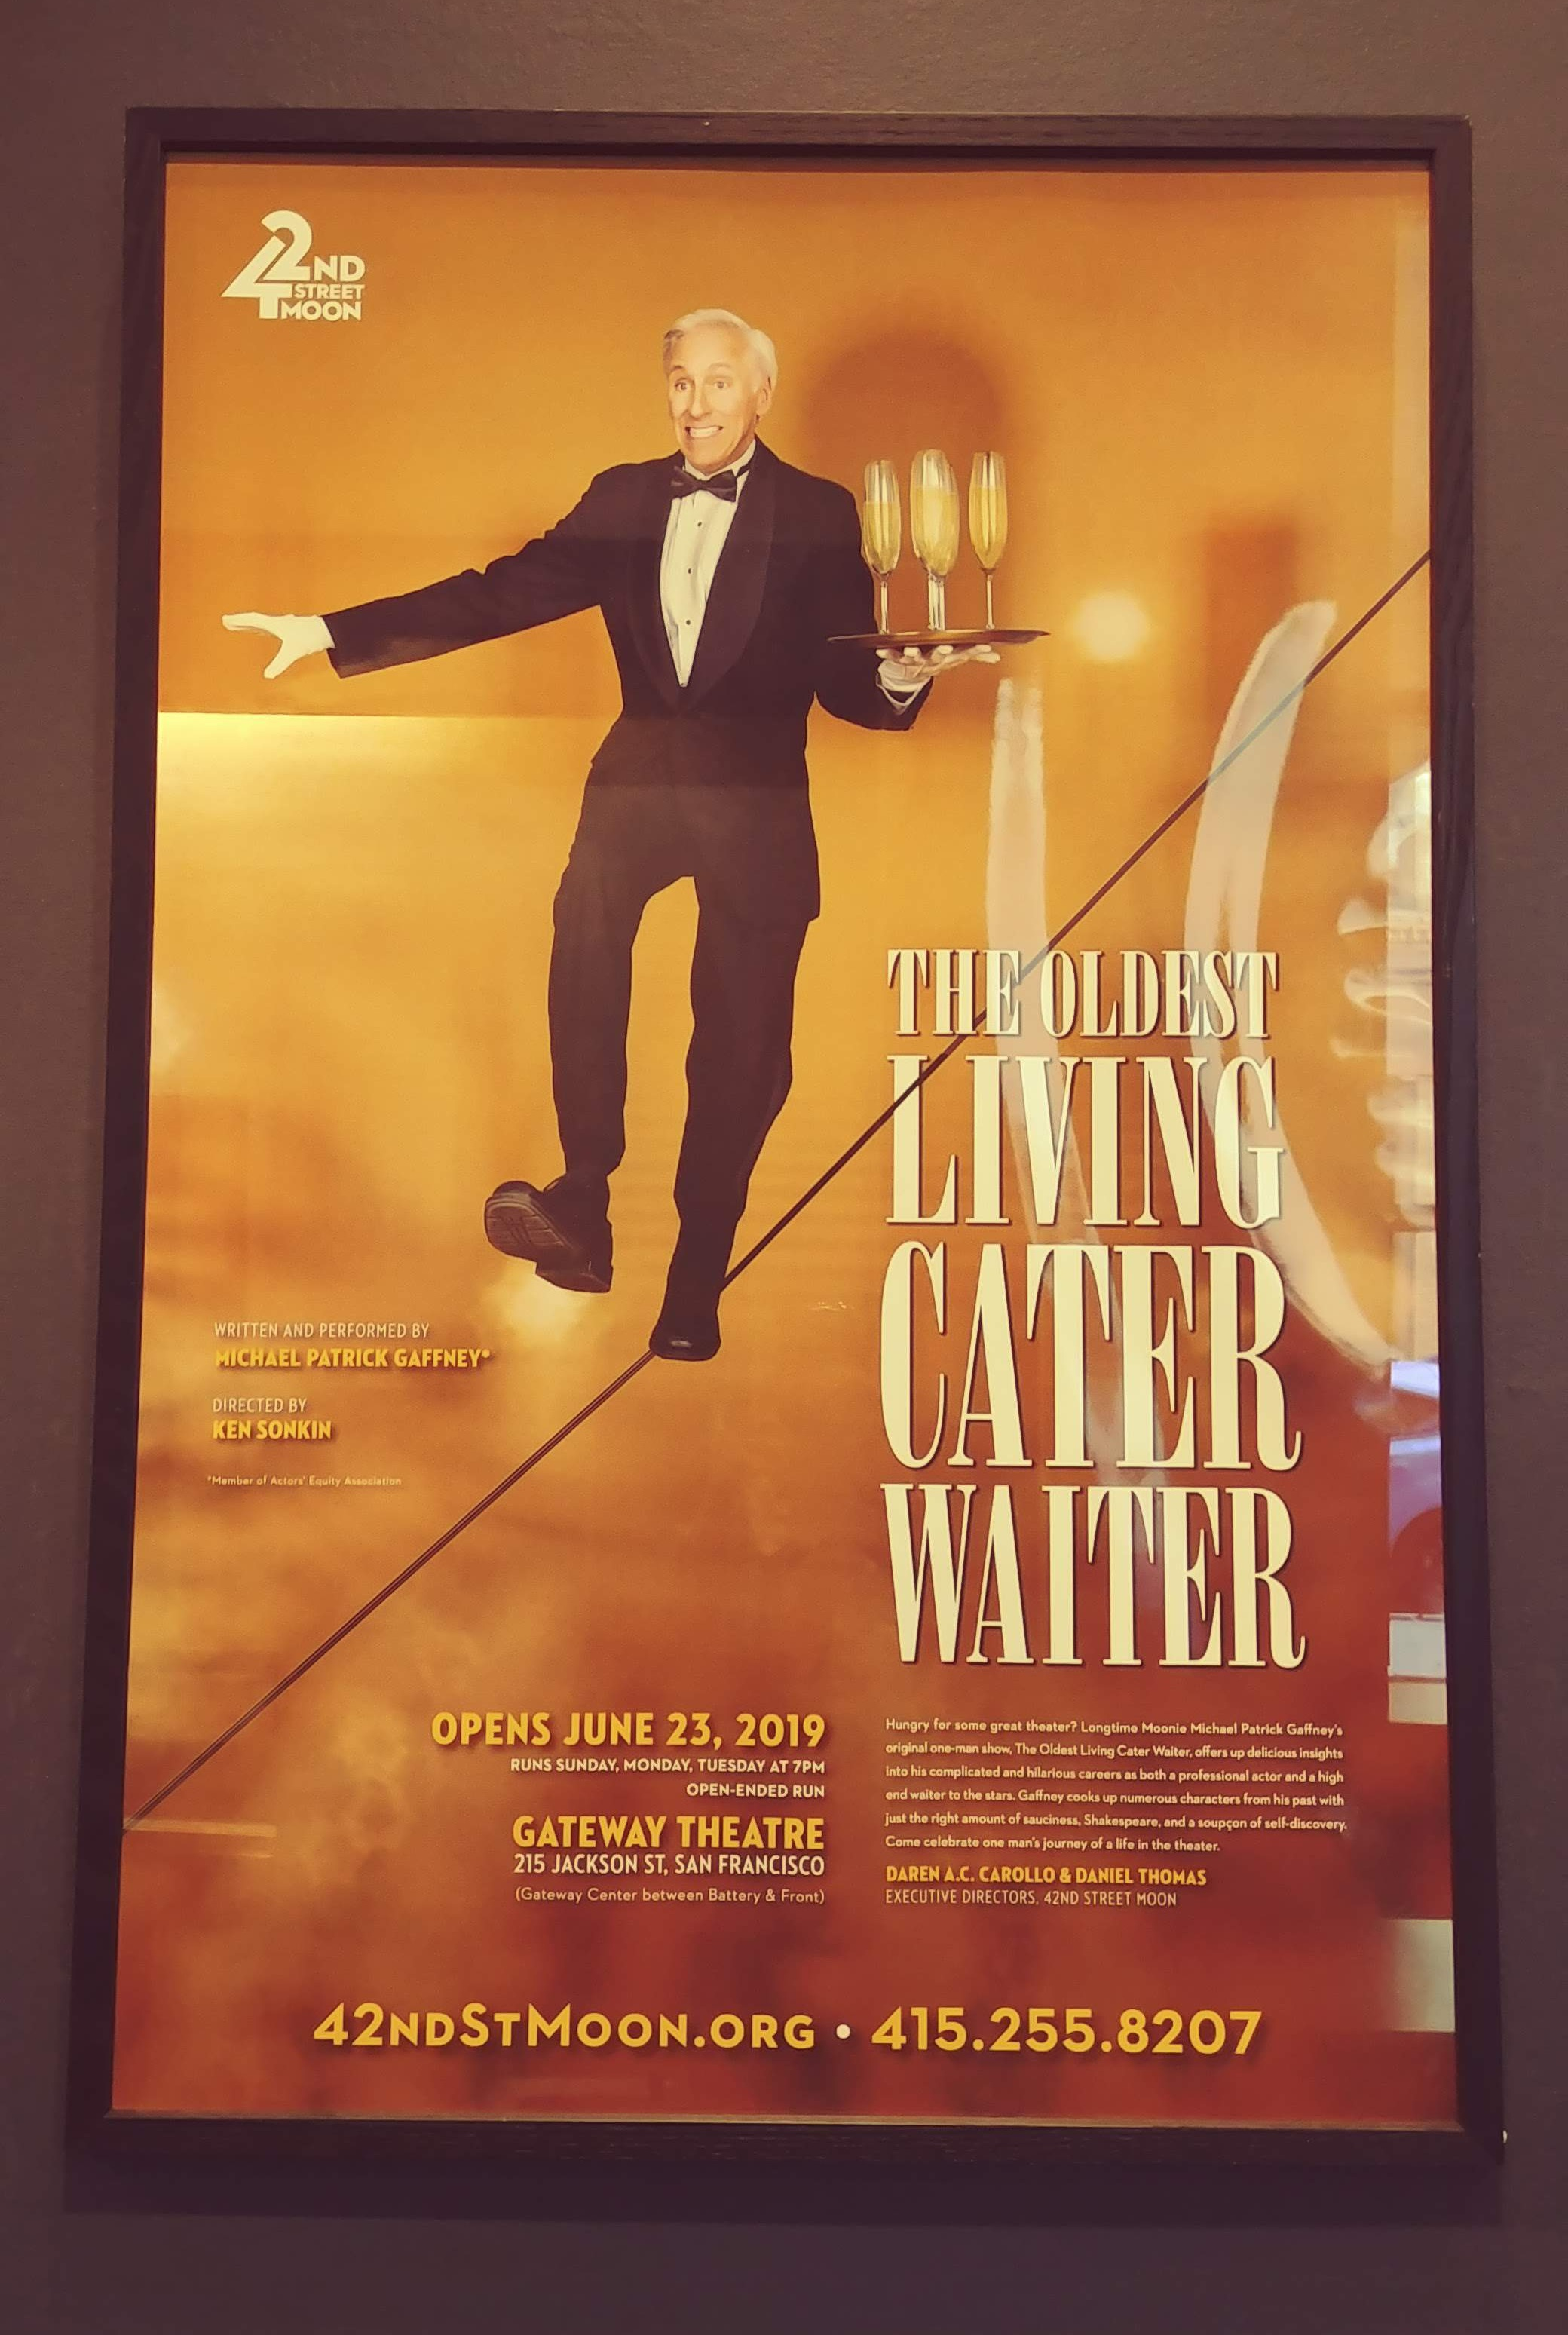 The-Oldest-Living-Cater-Waiter-One-Man-Show-Performance-Play-2019-Gateway-Theatre-San-Francisco-Embarcadero-District-42nd-Street-Moon-Michael-Patrick-Gaffney-Sandy-By-The-Bay-SandyByTheBay-SFFoodPhotography-SF-Food+%28+%2811%29.jpg